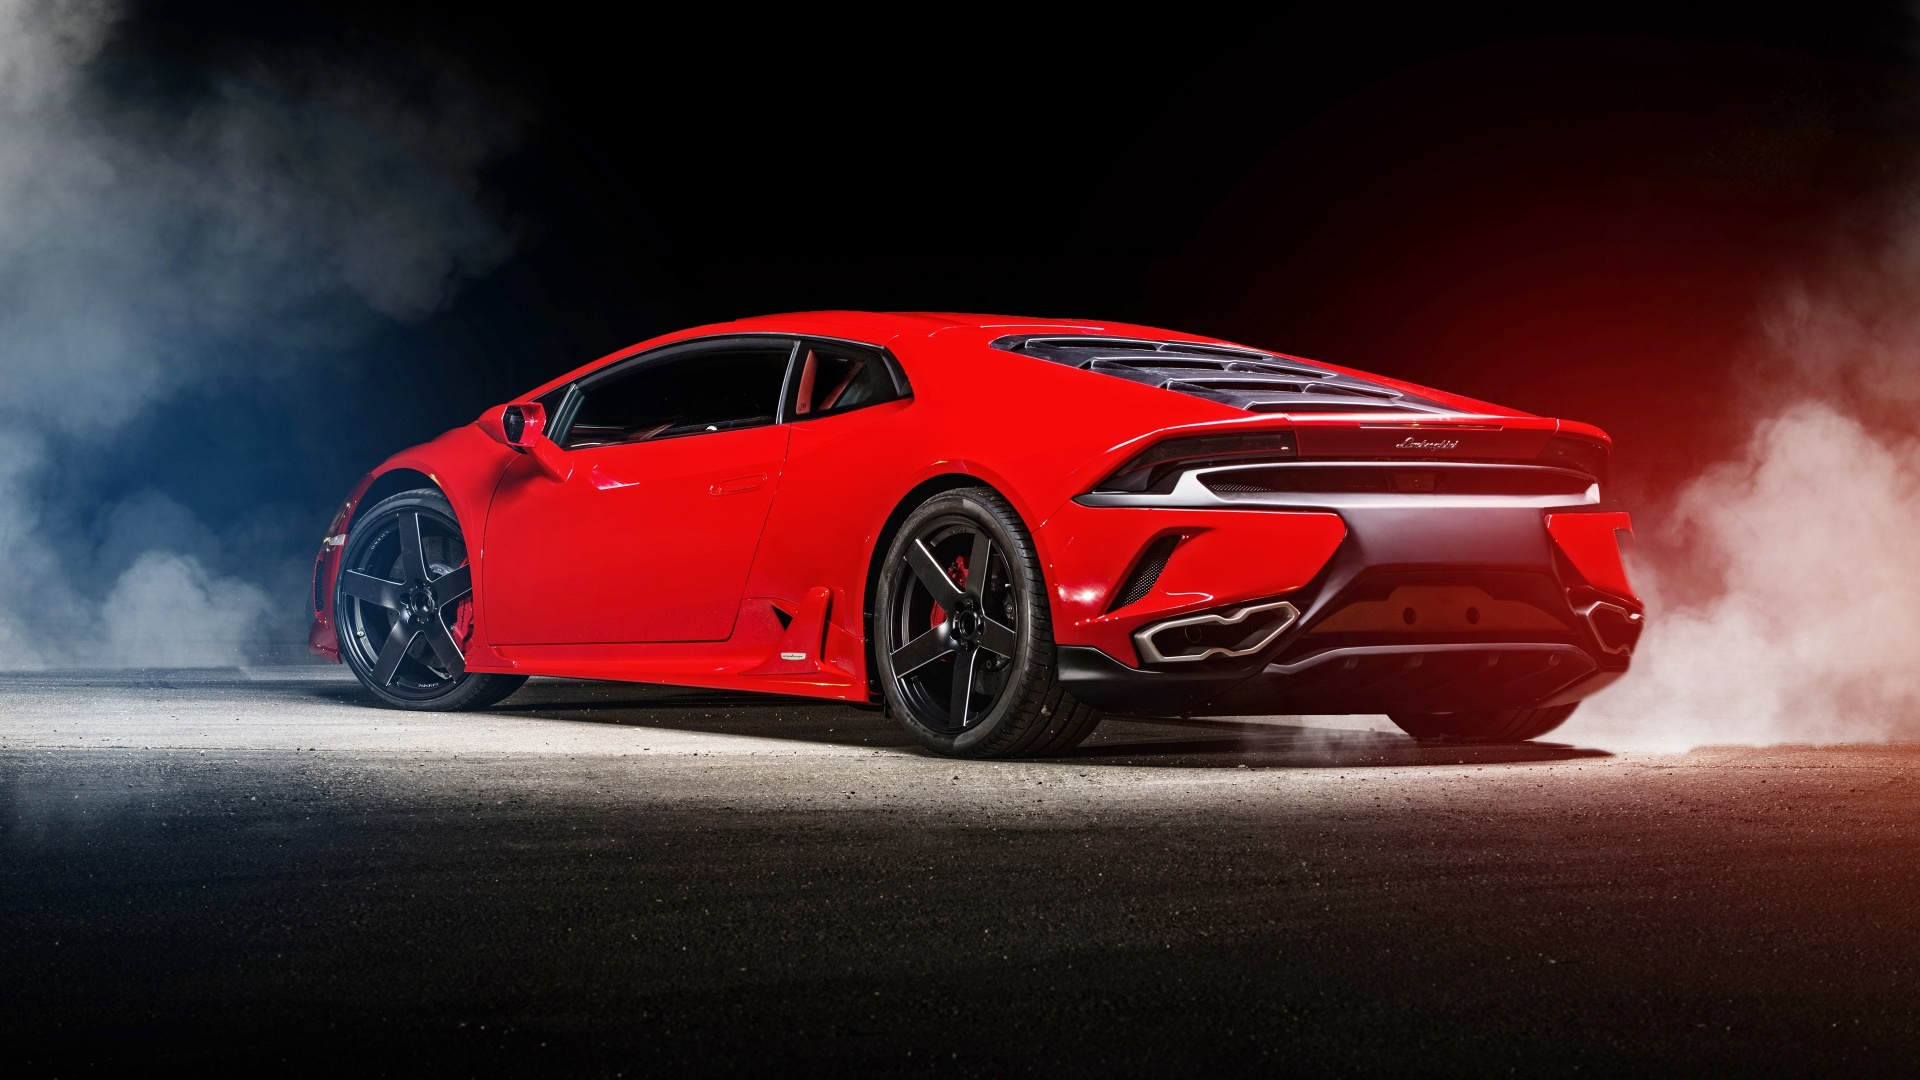 Lamborghini Cars Photos Wallpapers Lamborghini Huracan Ares Design Wallpapers 1920x1080